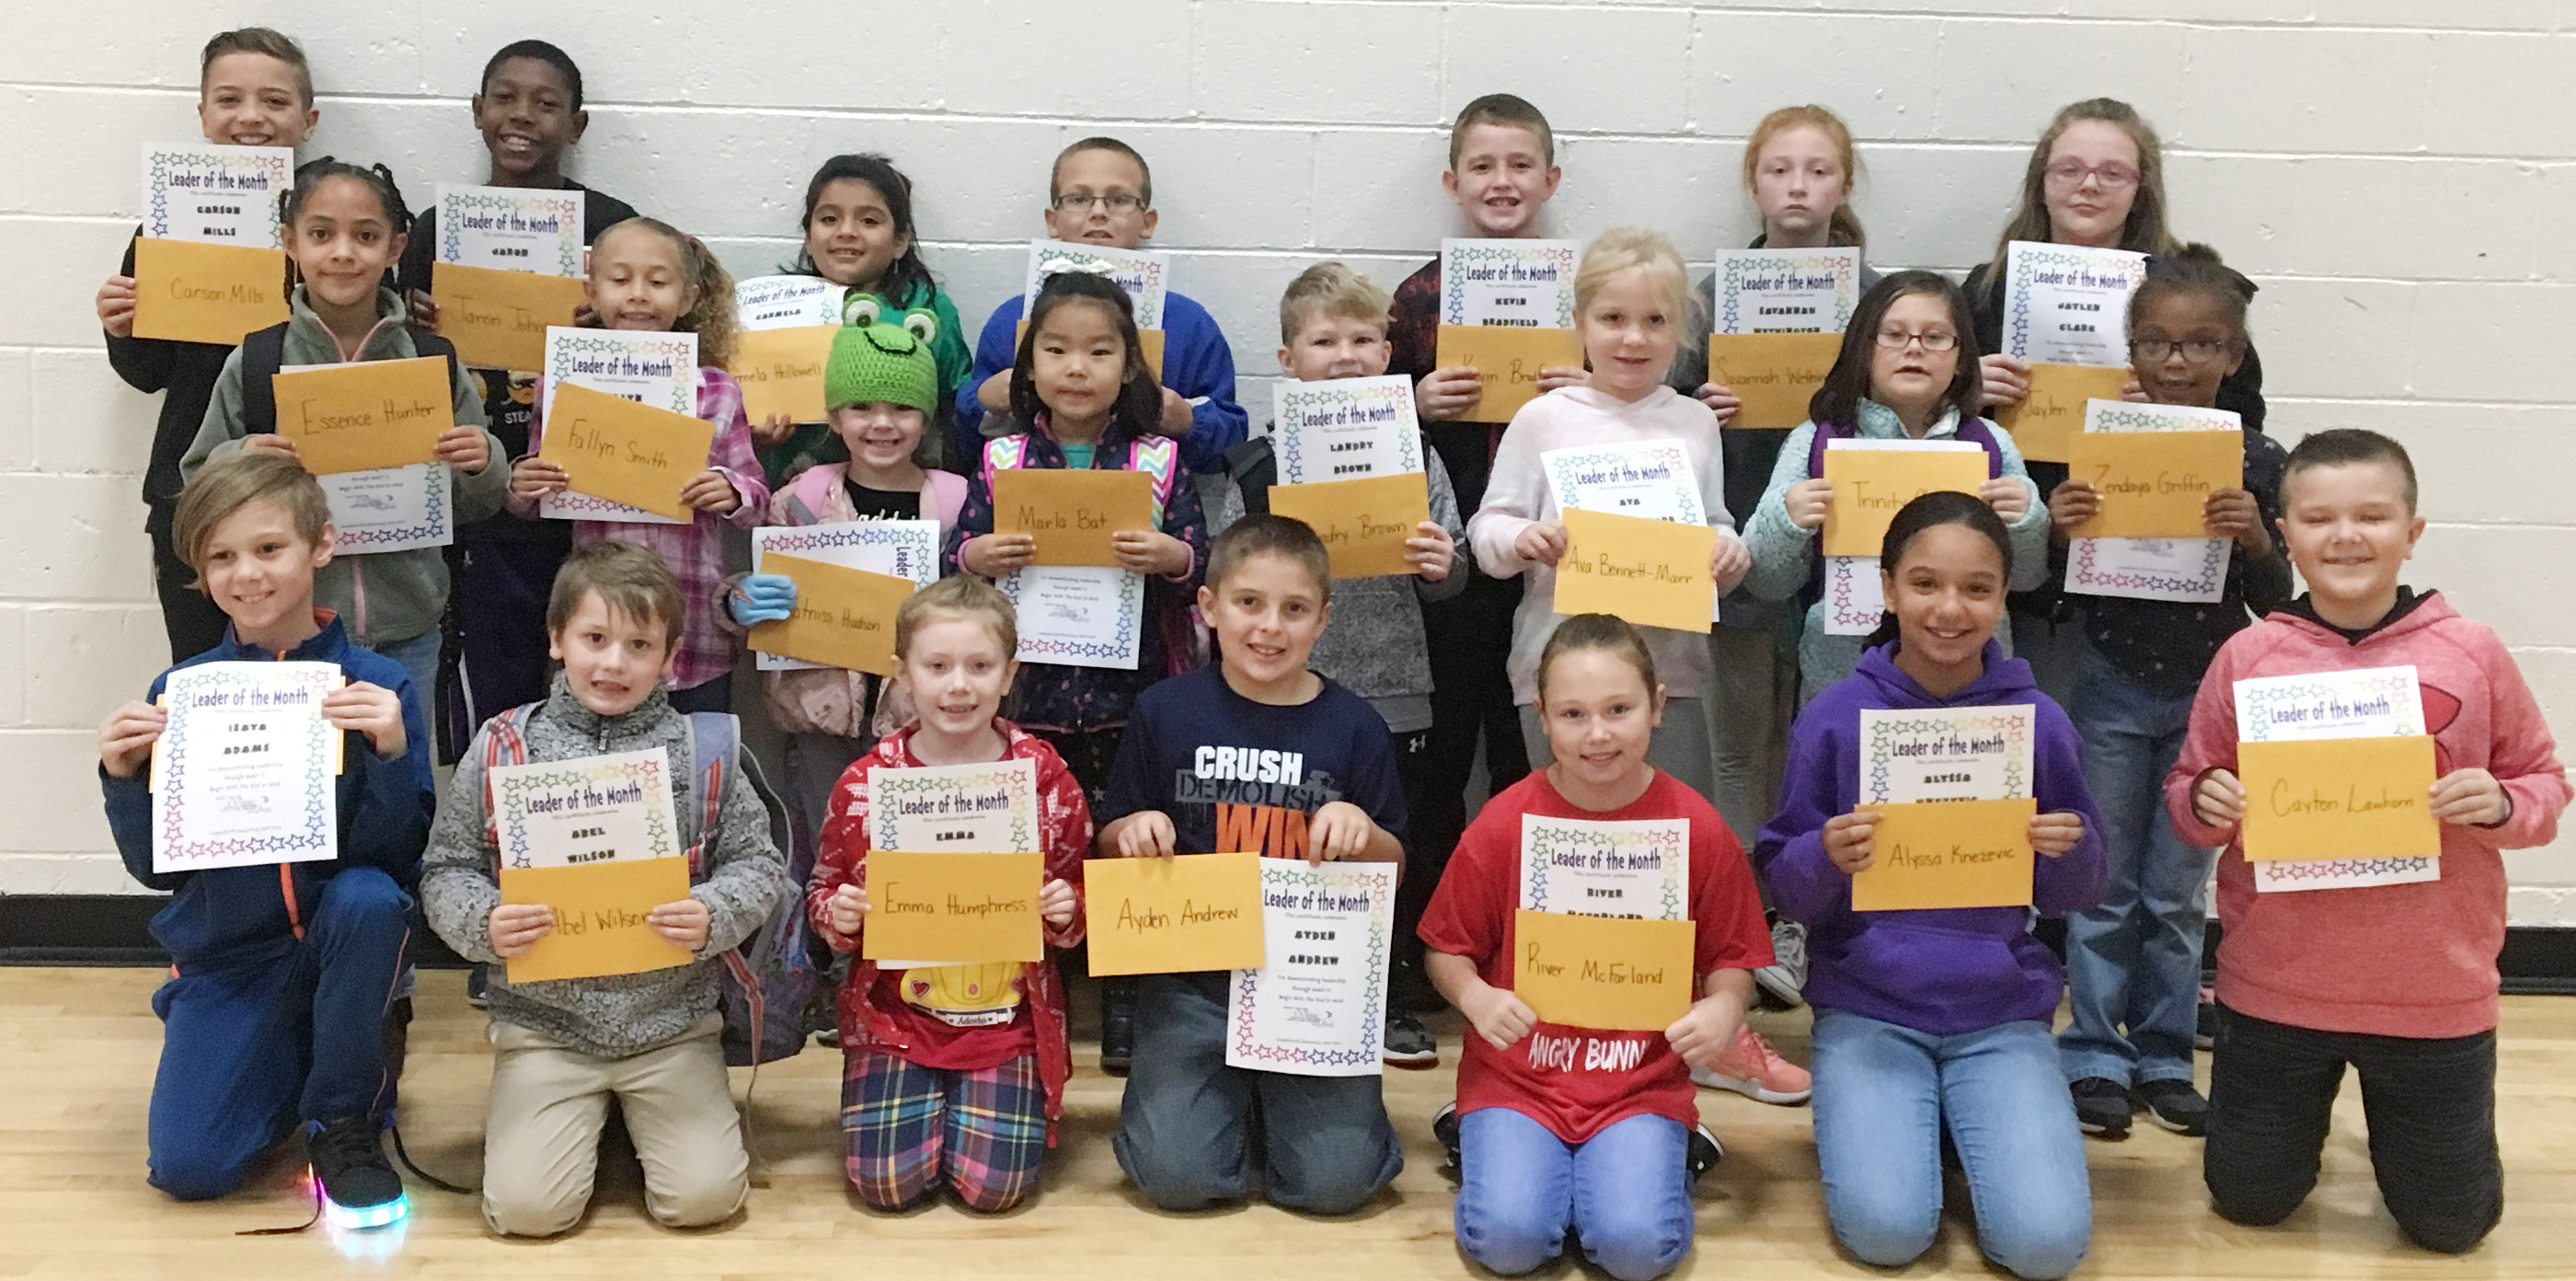 From left, front, are fourth-grader Isaya Adams, first-grader Abel Wilson, second-graders Emma Humphress and Ayden Andrew, fourth-grader River McFarland, fifth-grader Alyssa Knezevic and fourth-grader Cayton Lawhorn. Second row, third-grader Essence Hunter, first-grader Fallyn Smith, kindergarteners Katniss Hudson and Marla Bat, first-grader Landry Brown, second-graders Ava Bennett-Marr and Trinity Clark and kindergartener Daya Griffin. Back, fifth-grader Carson Mills, fourth-grader Jaron Johnson, first-grader Carmela Hollowell, third-graders Brendan Martin and Kevin Bradfield and fifth-graders Savannah Wethington and Jaylen Clark. Absent from the photo are kindergarteners Lucy Oliver, Chloe Calhoun and Bentley Cox, second-grader Jayden Maupin and third-grader Jackson Bates.